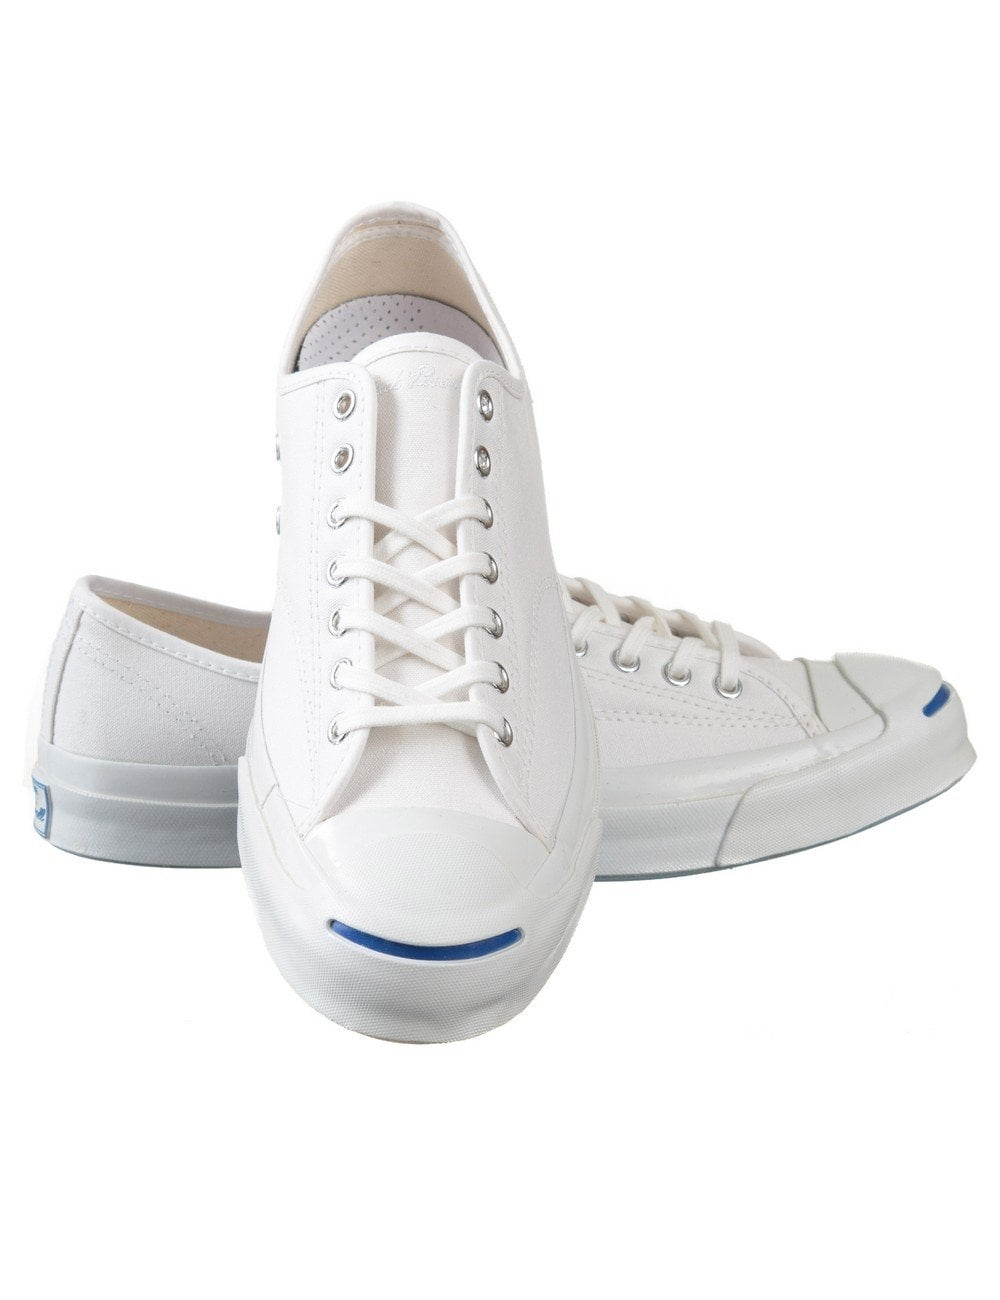 09d1e0eae5a Converse Jack Purcell Signature Shoes OX - White - Footwear from Fat ...